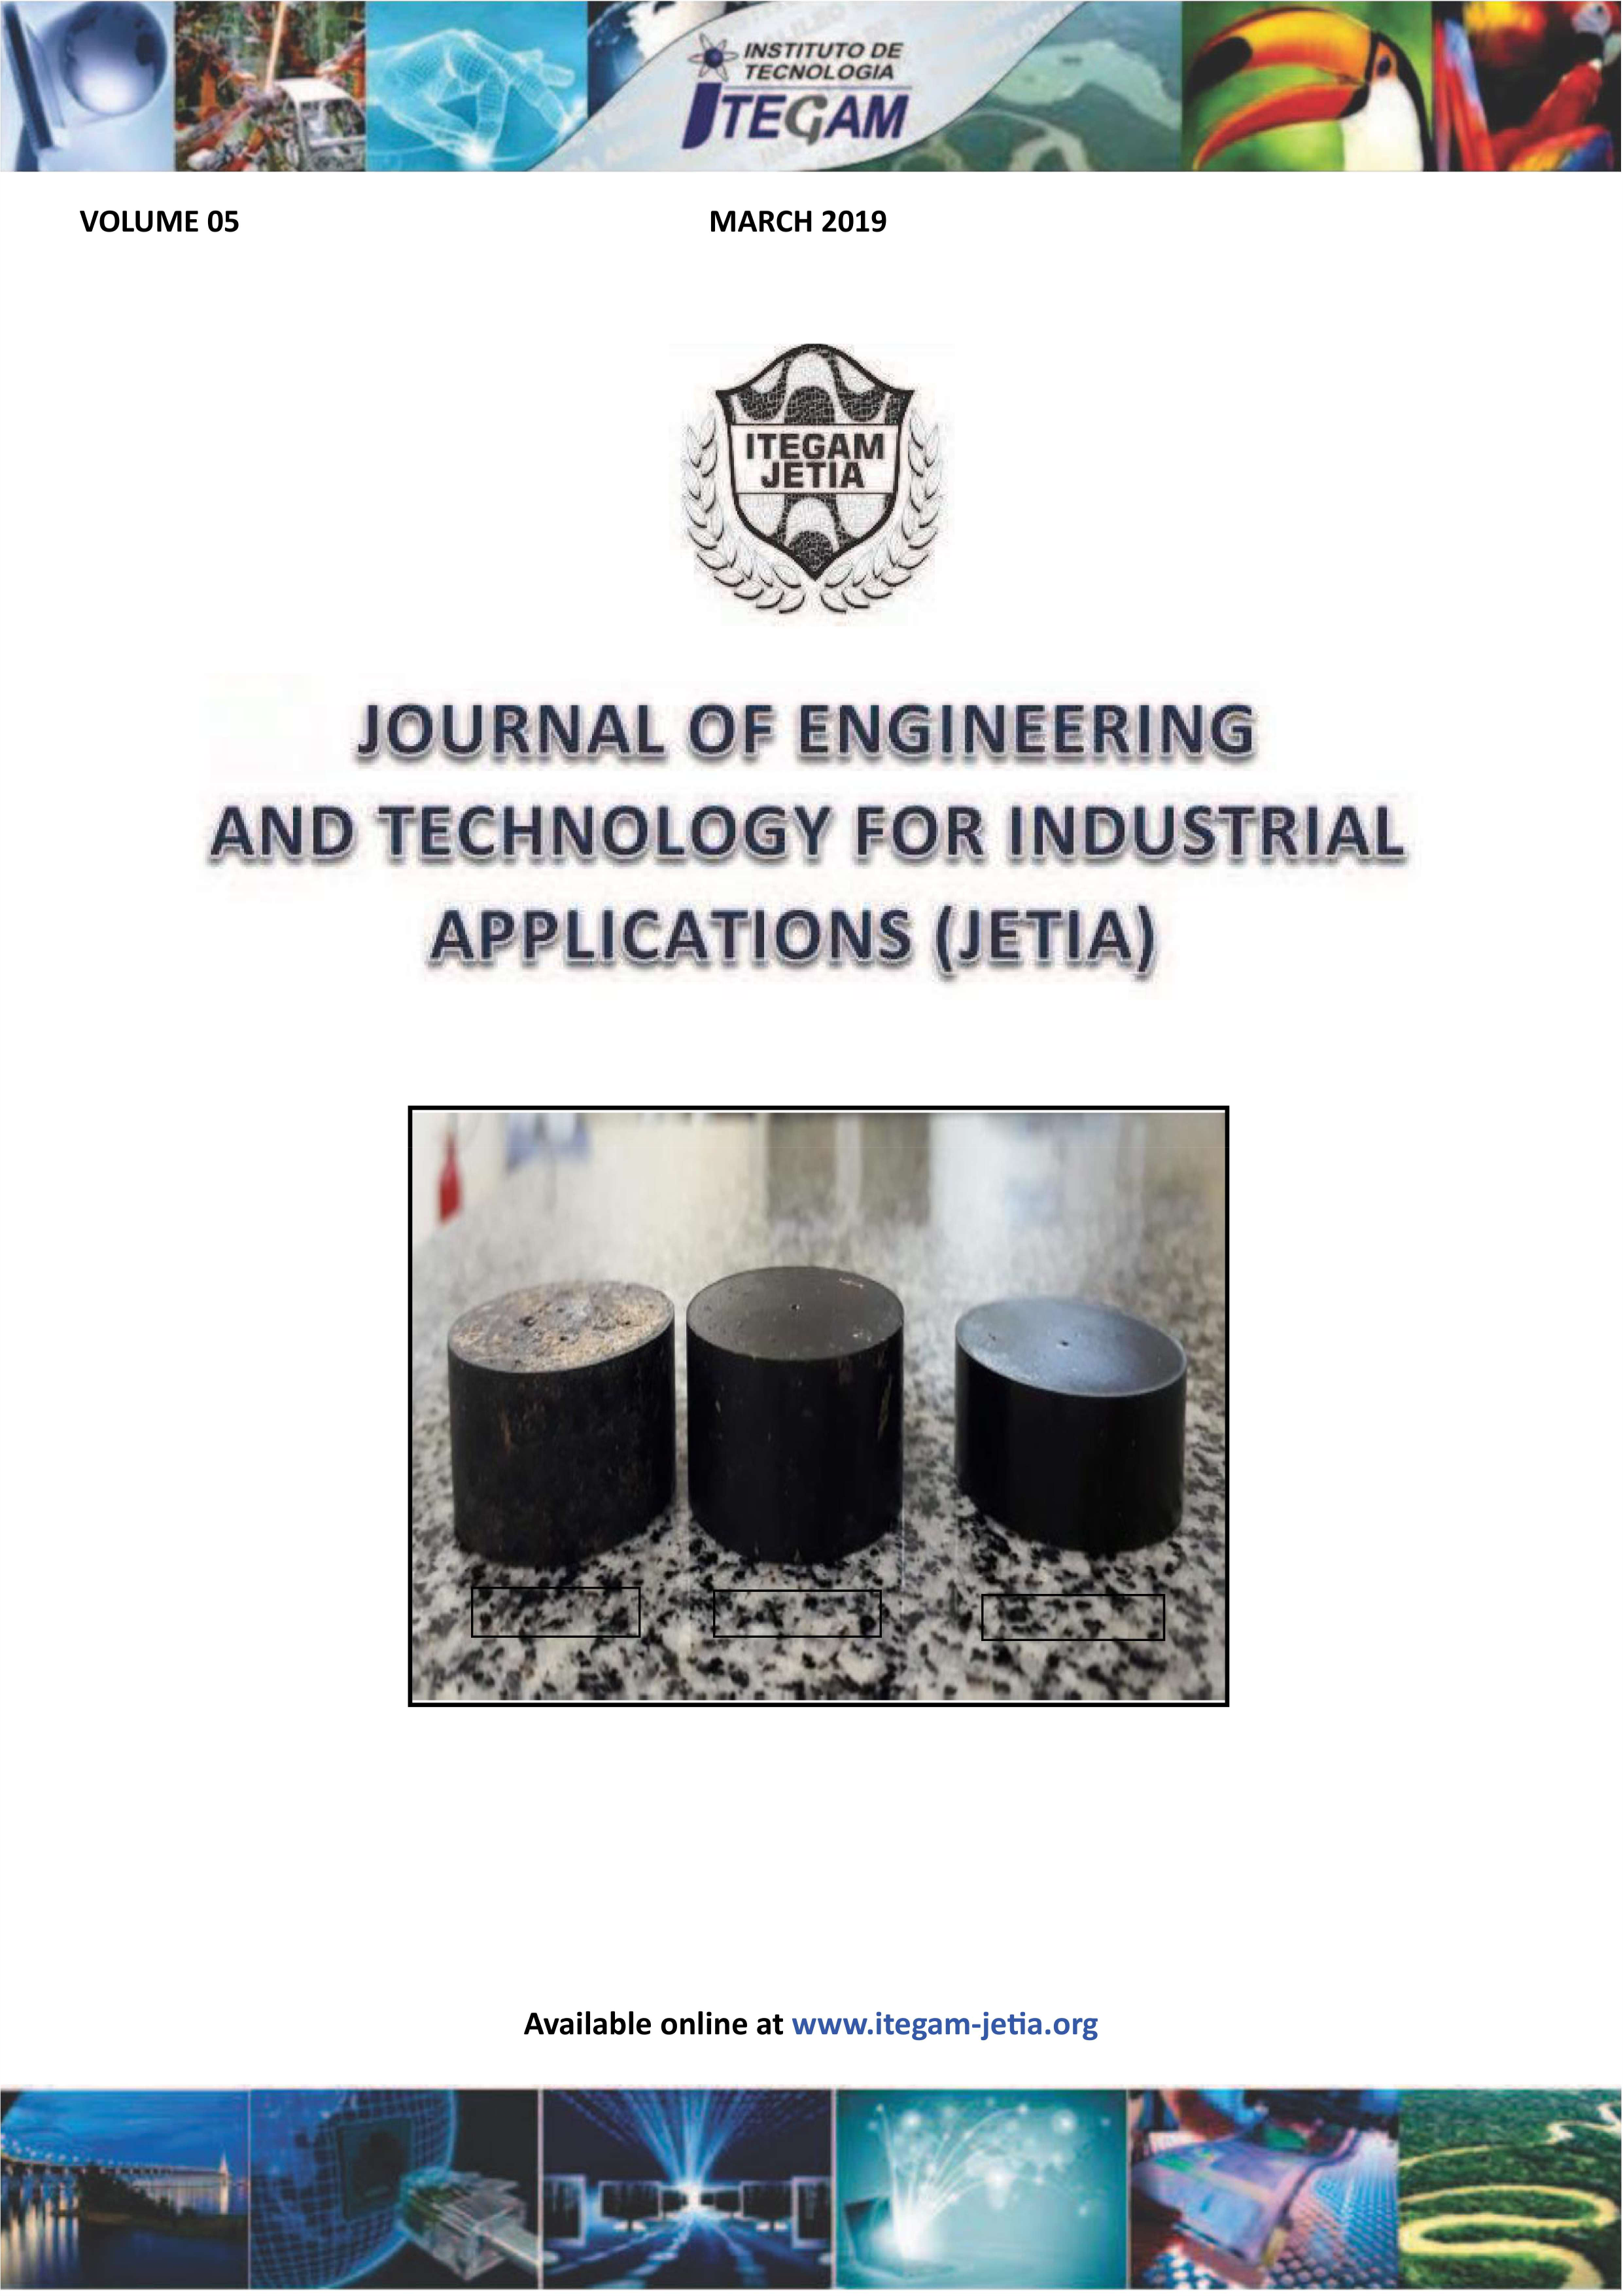 Simulation as a tool for process capability analysis: A case